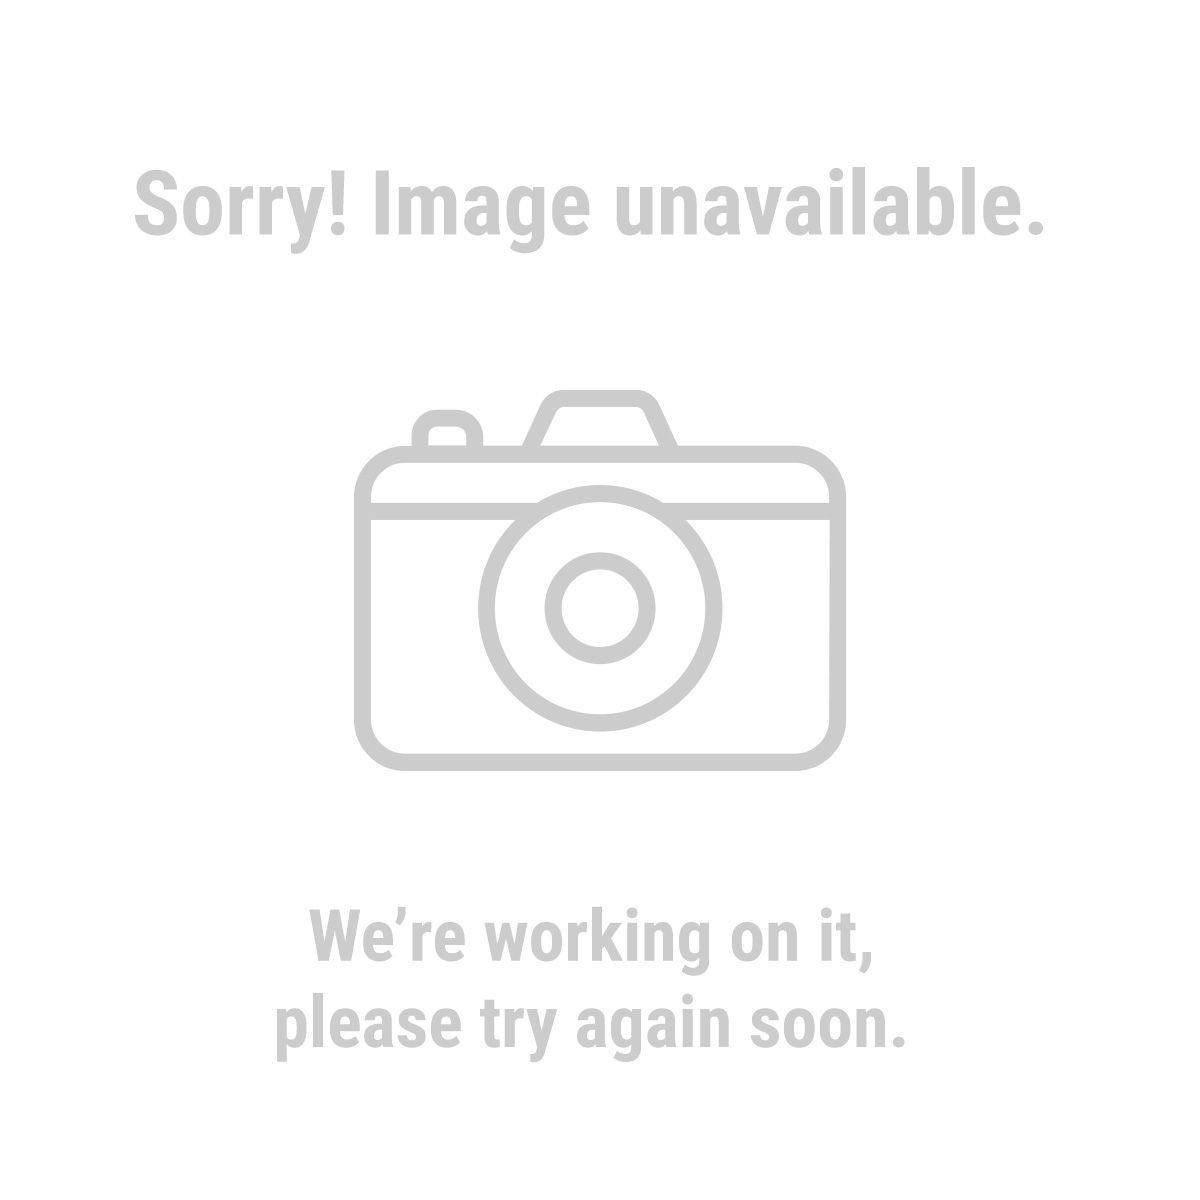 Pittsburgh Motorcycle 61670 Motorcycle Stand/Wheel Chock